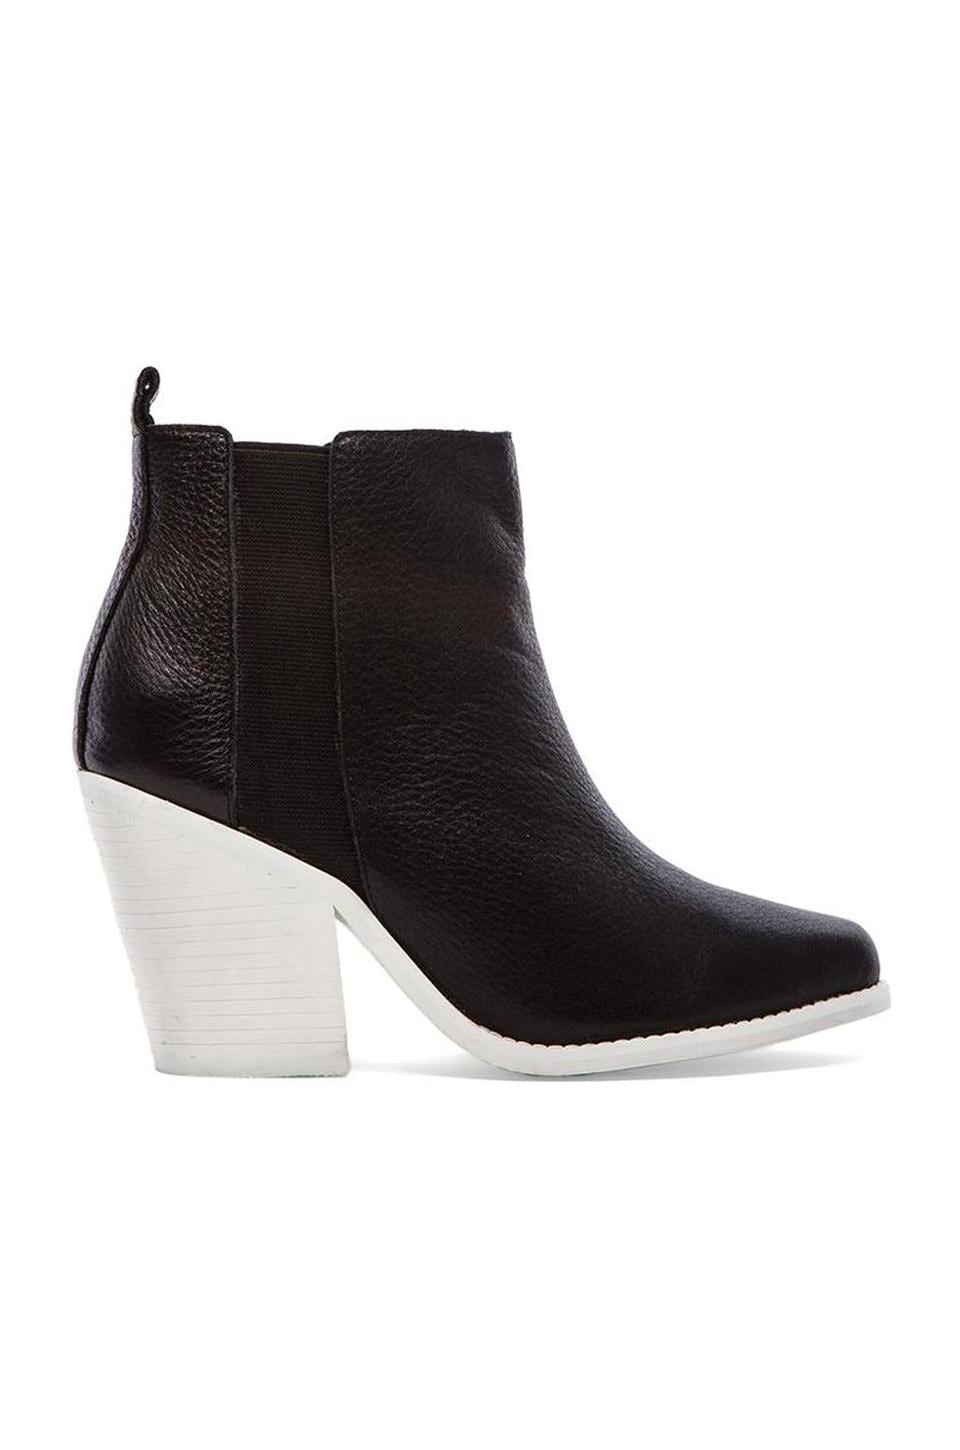 Sol Sana Toni Boot in Black & White